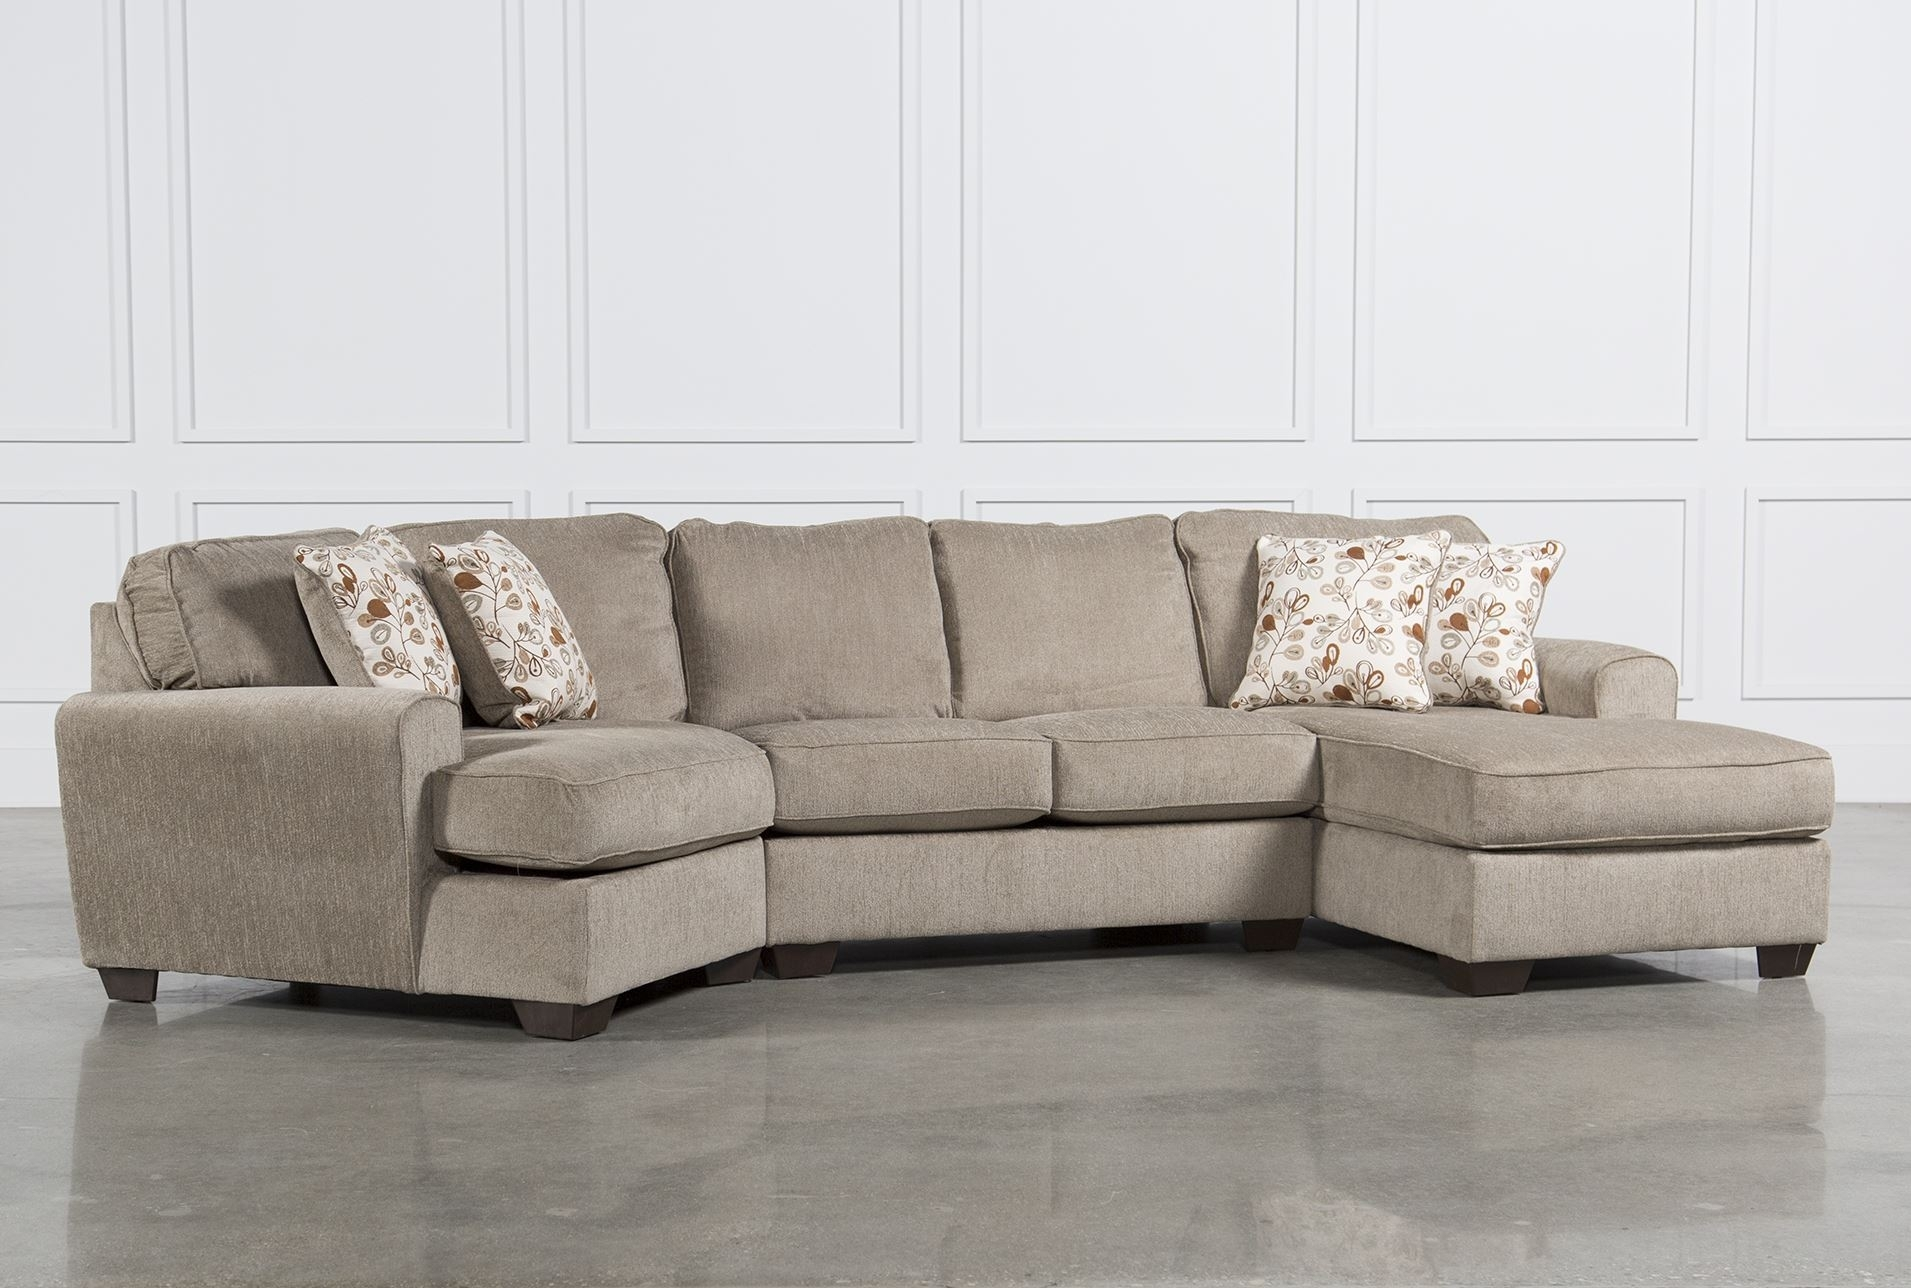 Furniture : Sectional Sofa Eugene Or Sectional Sofa 2 Piece Set for Eugene Oregon Sectional Sofas